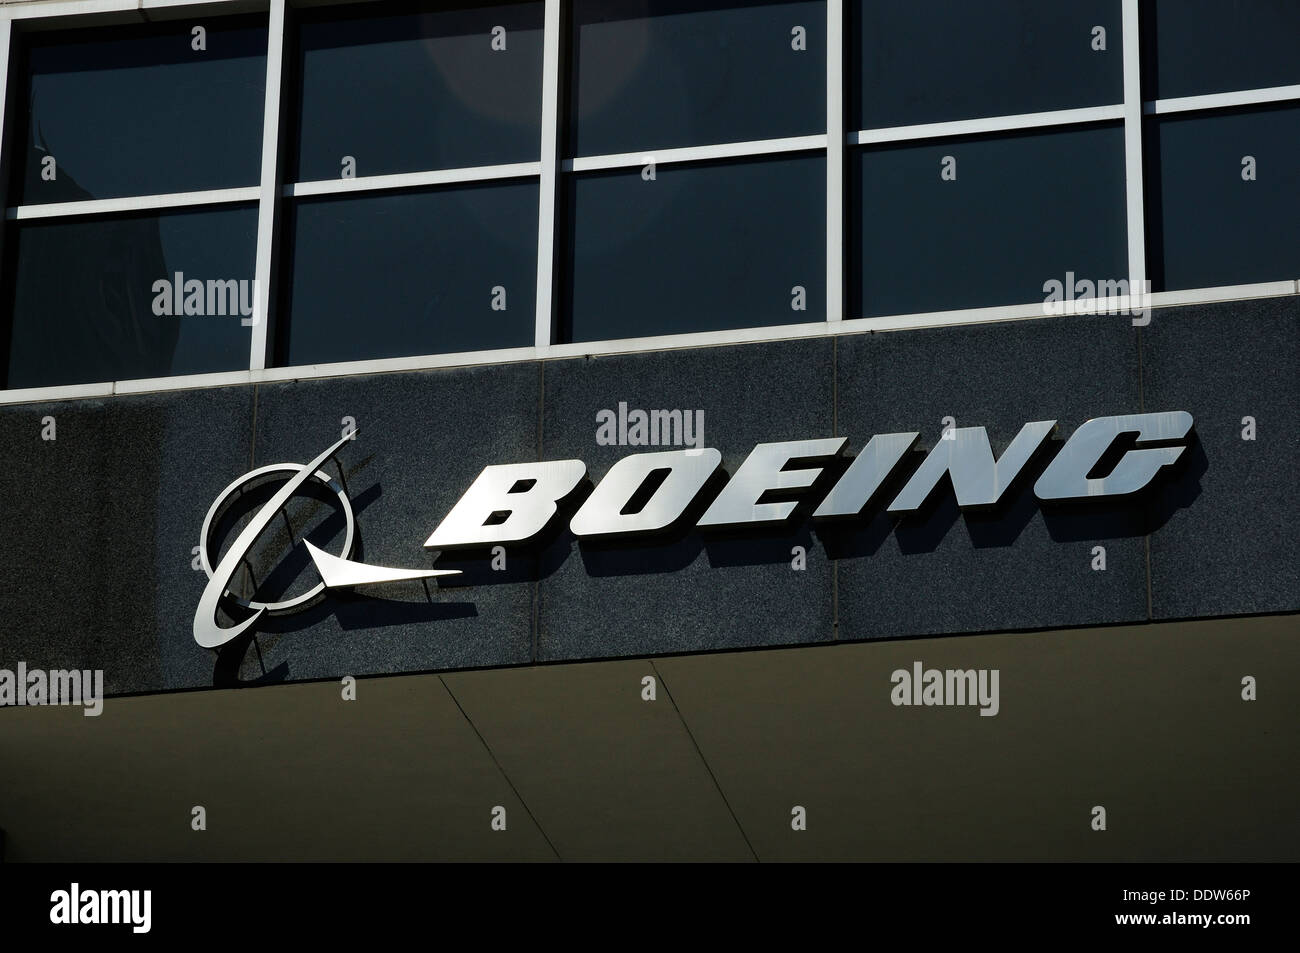 Boeing company headquarters and logo in chicago illinois usa stock boeing company headquarters and logo in chicago illinois usa buycottarizona Image collections